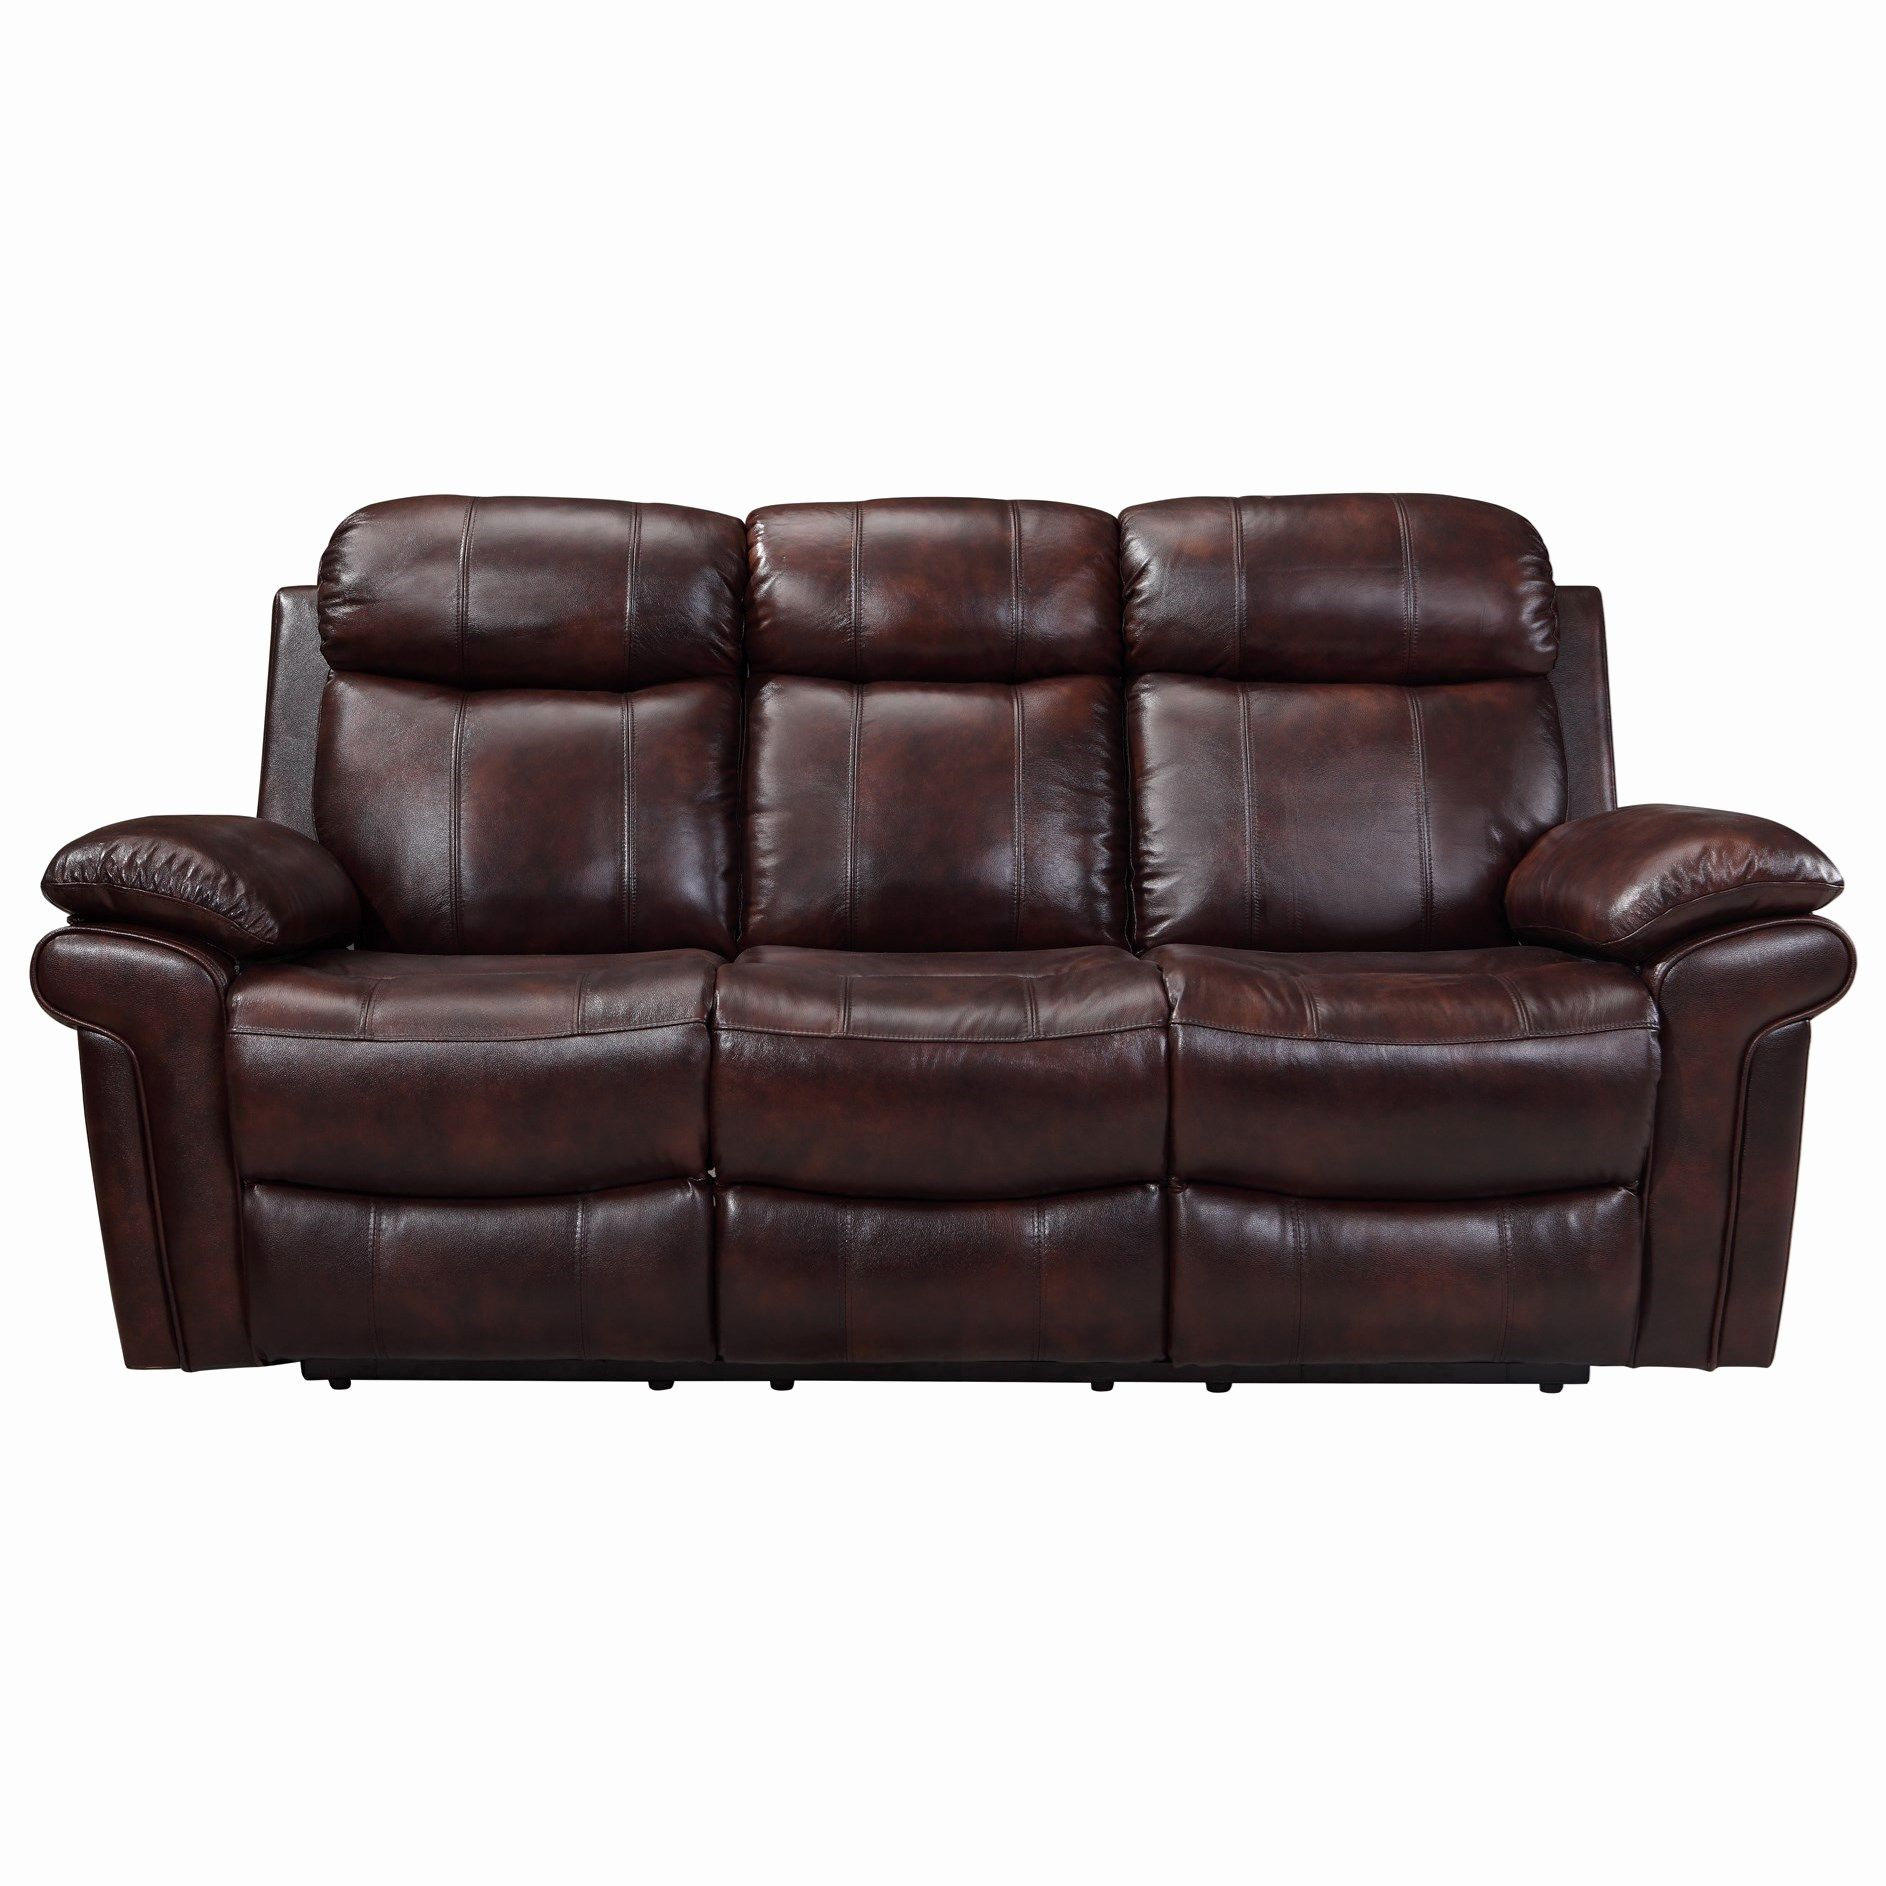 Best Of Tan Leather Sofa Graphics Luxury Sofas Orland Park Chicago Il